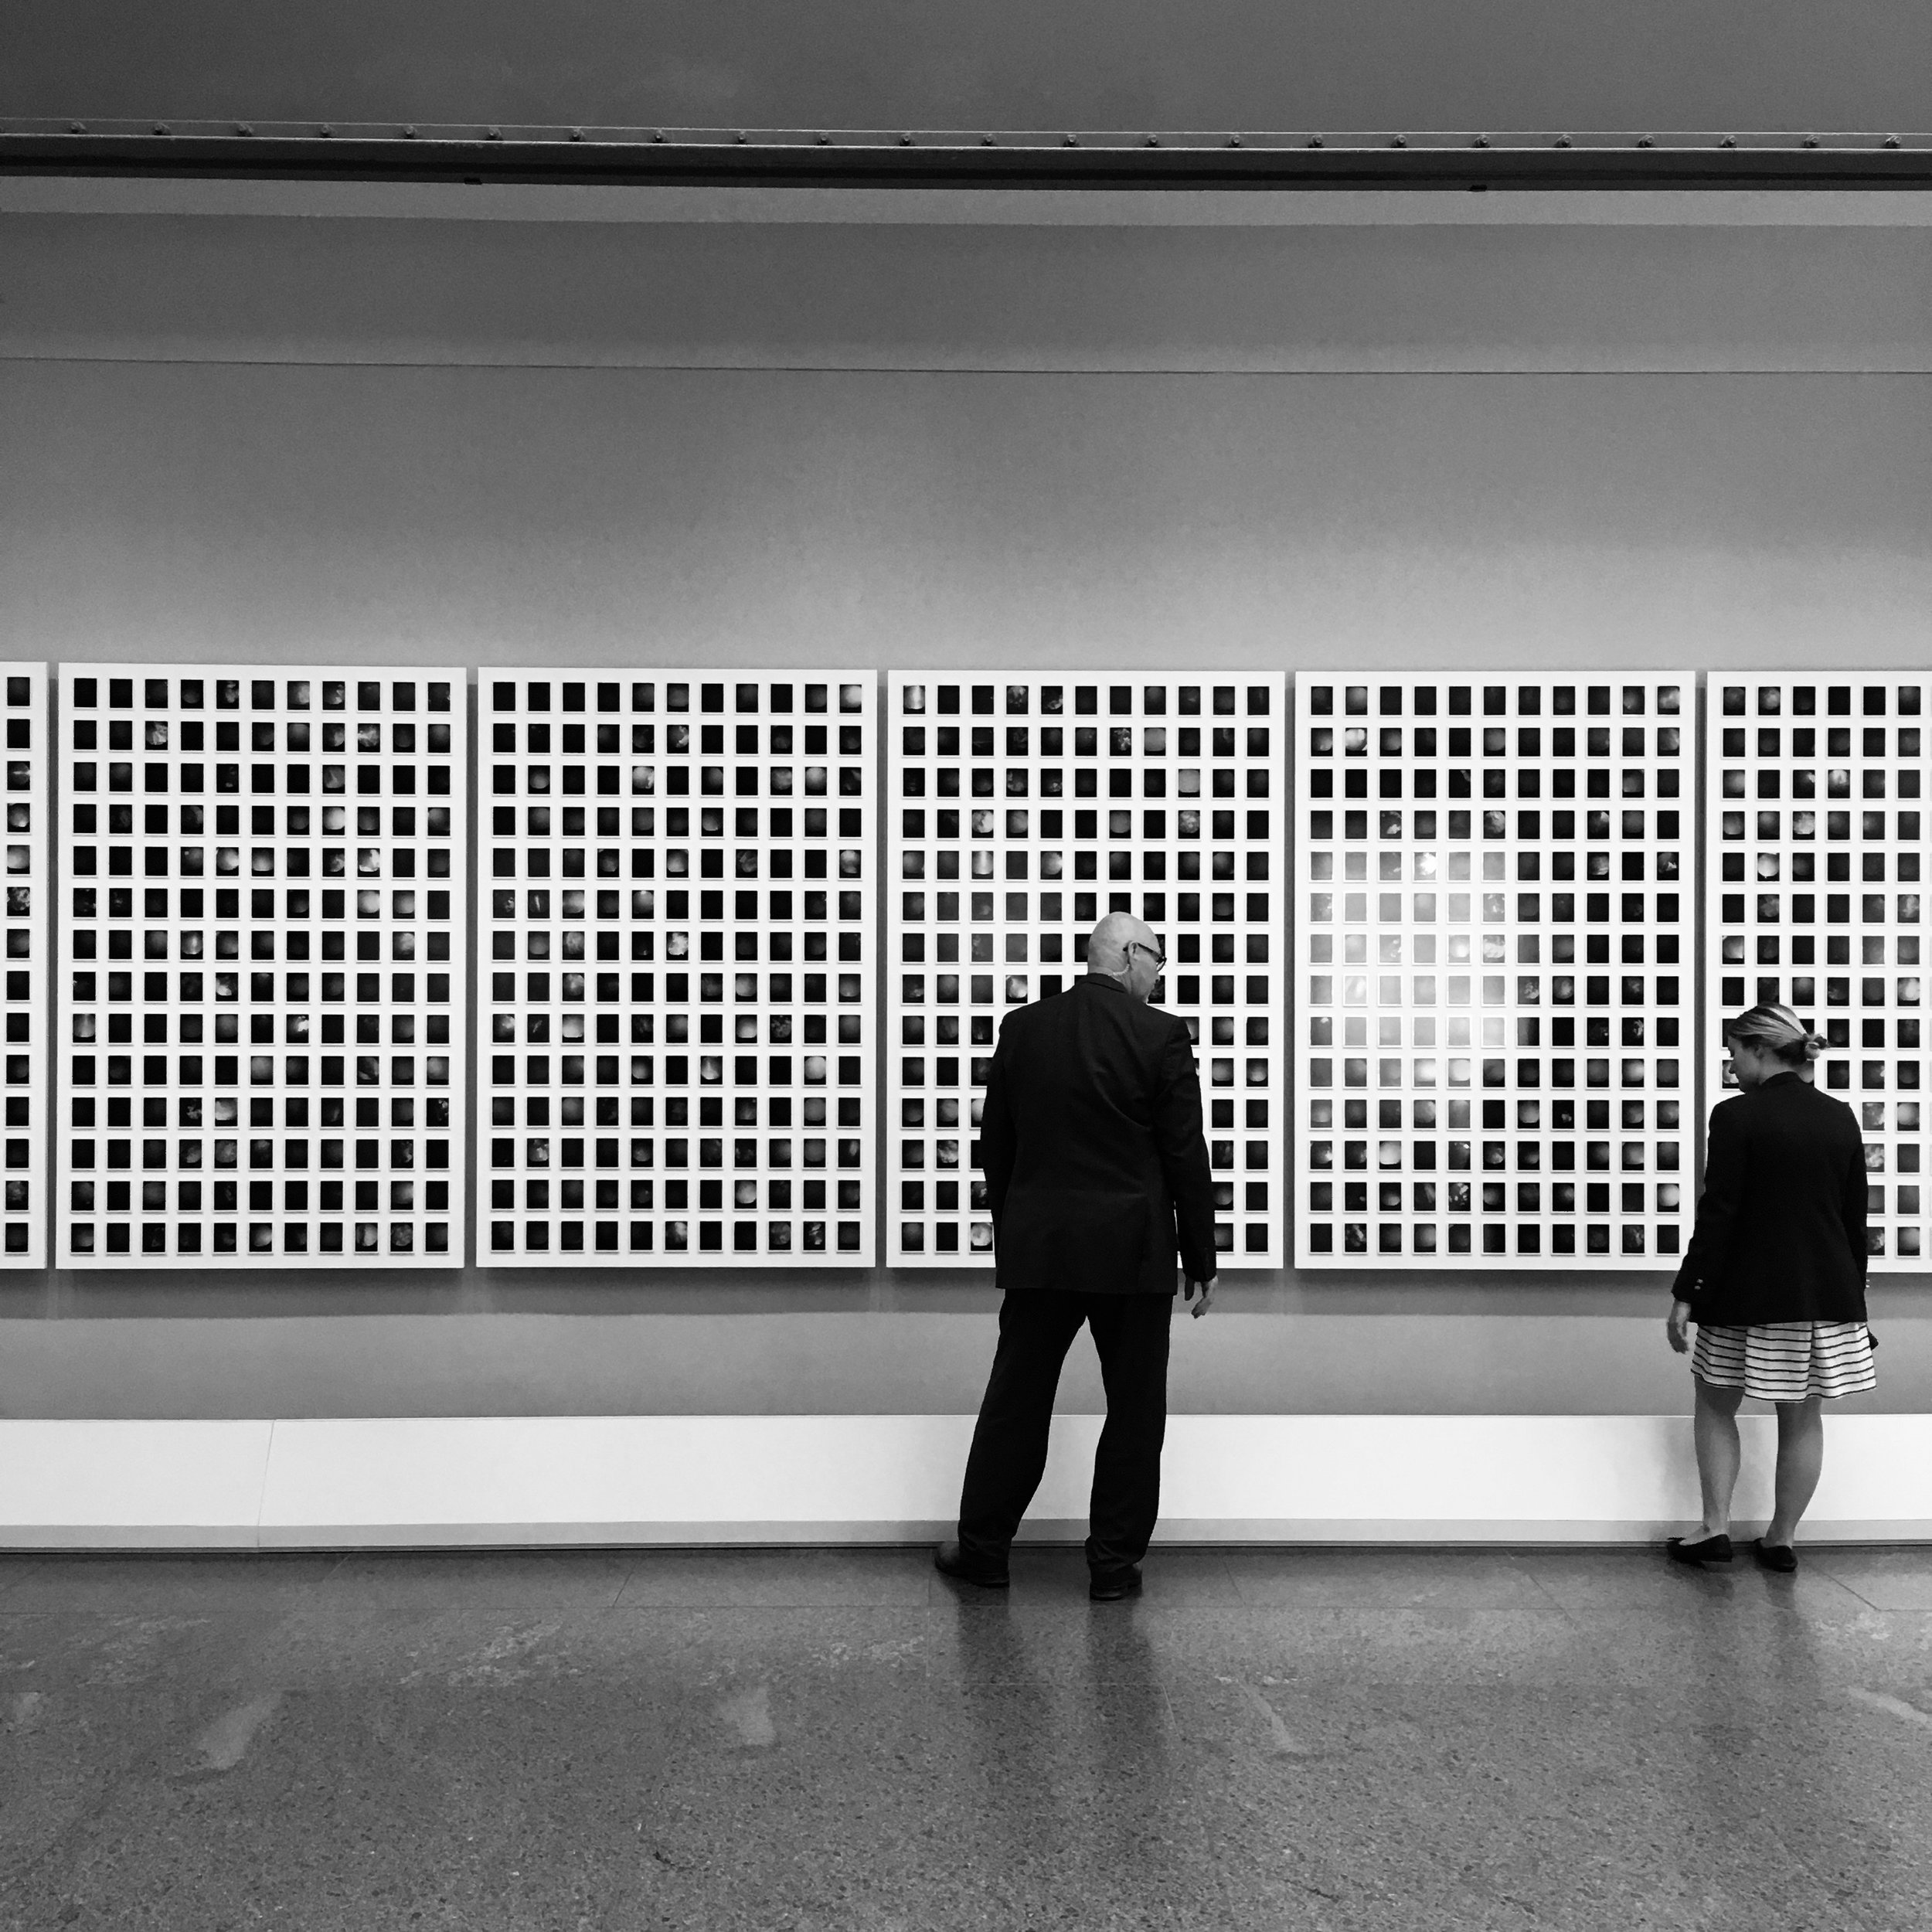 Installation detail – United States Holocaust Memorial Museum (Washington DC)